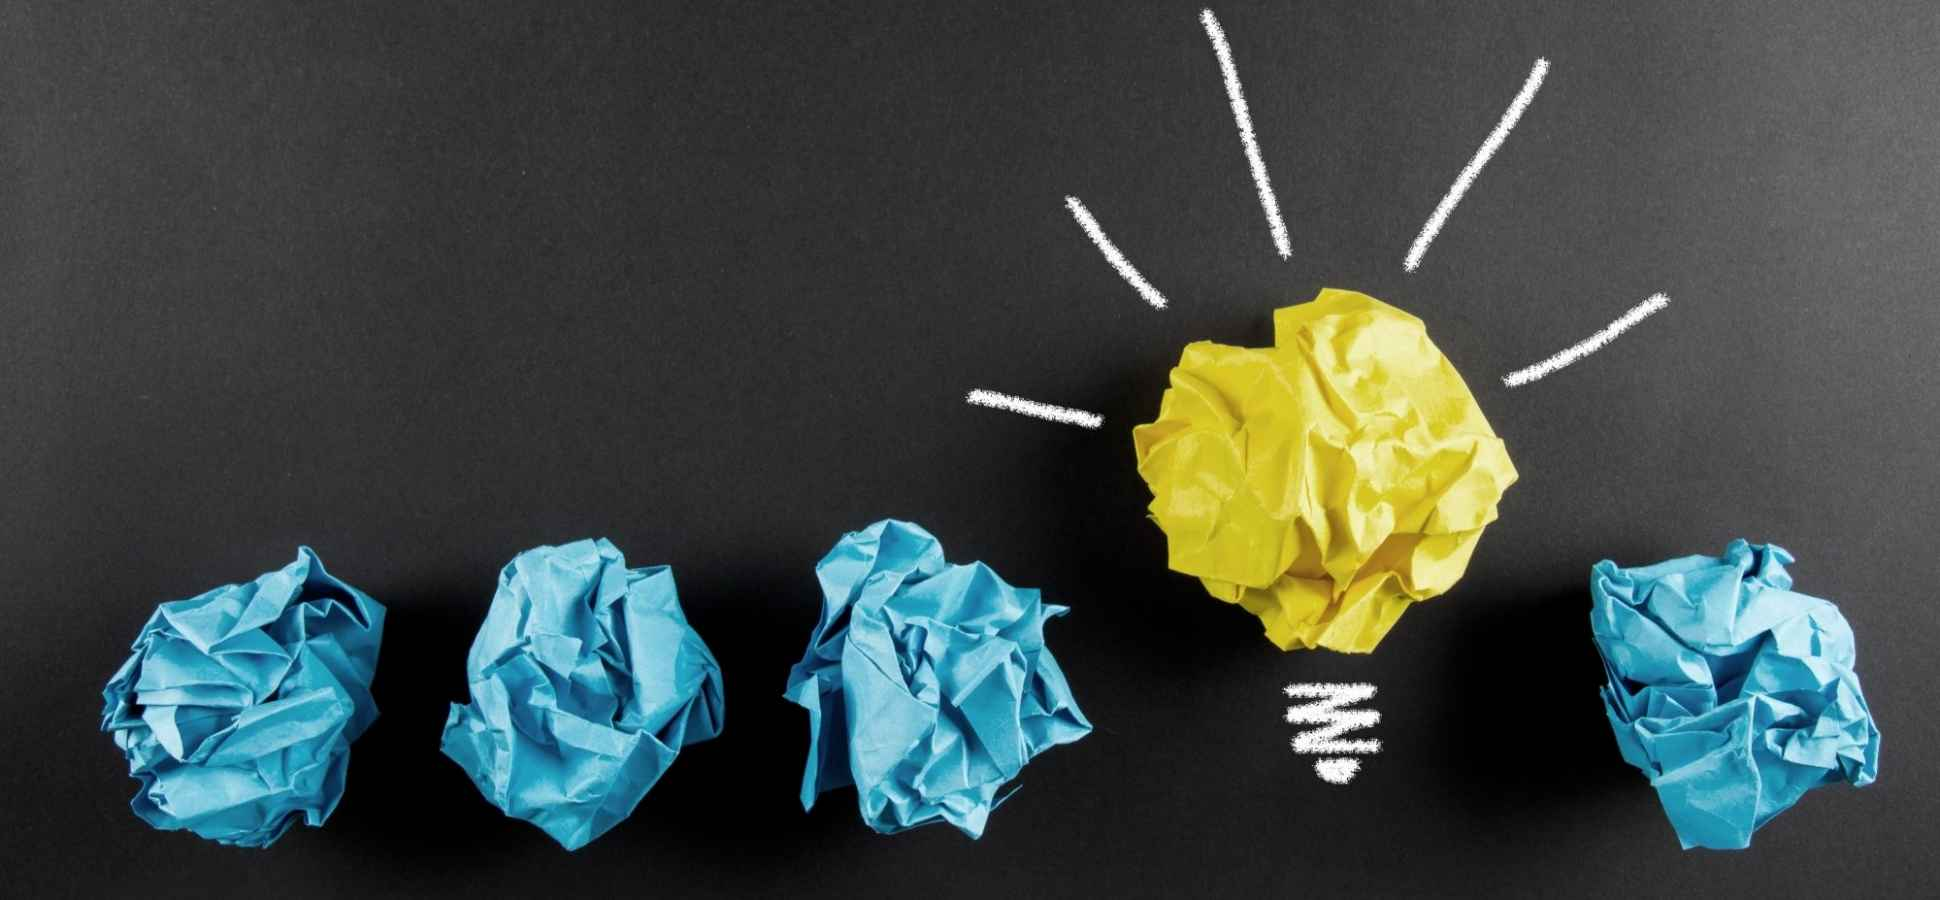 22 Awesome Sources of Inspiration for Idea Generation: Part One